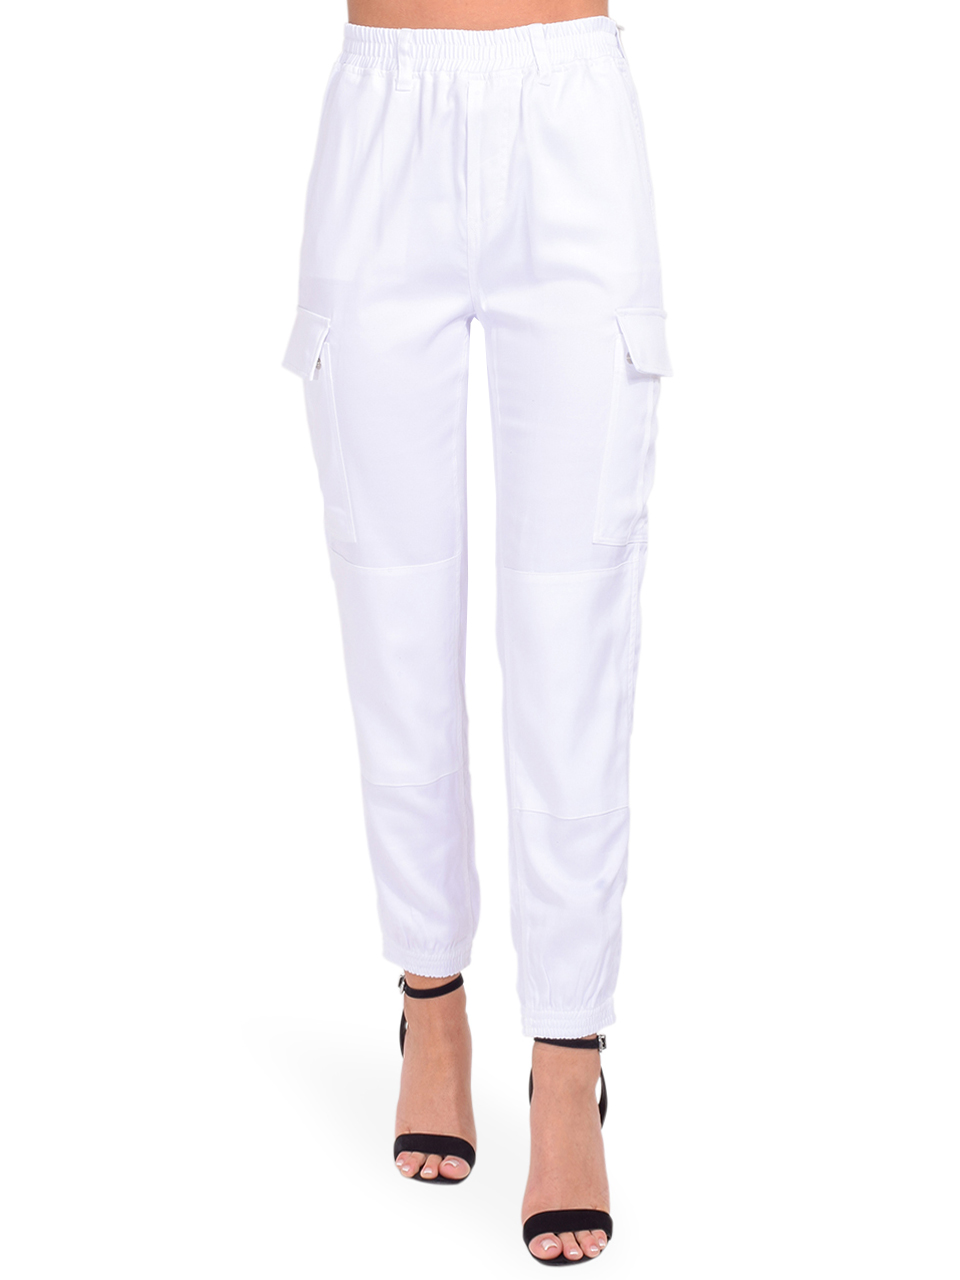 Jinni Cargo Pant in White Front View